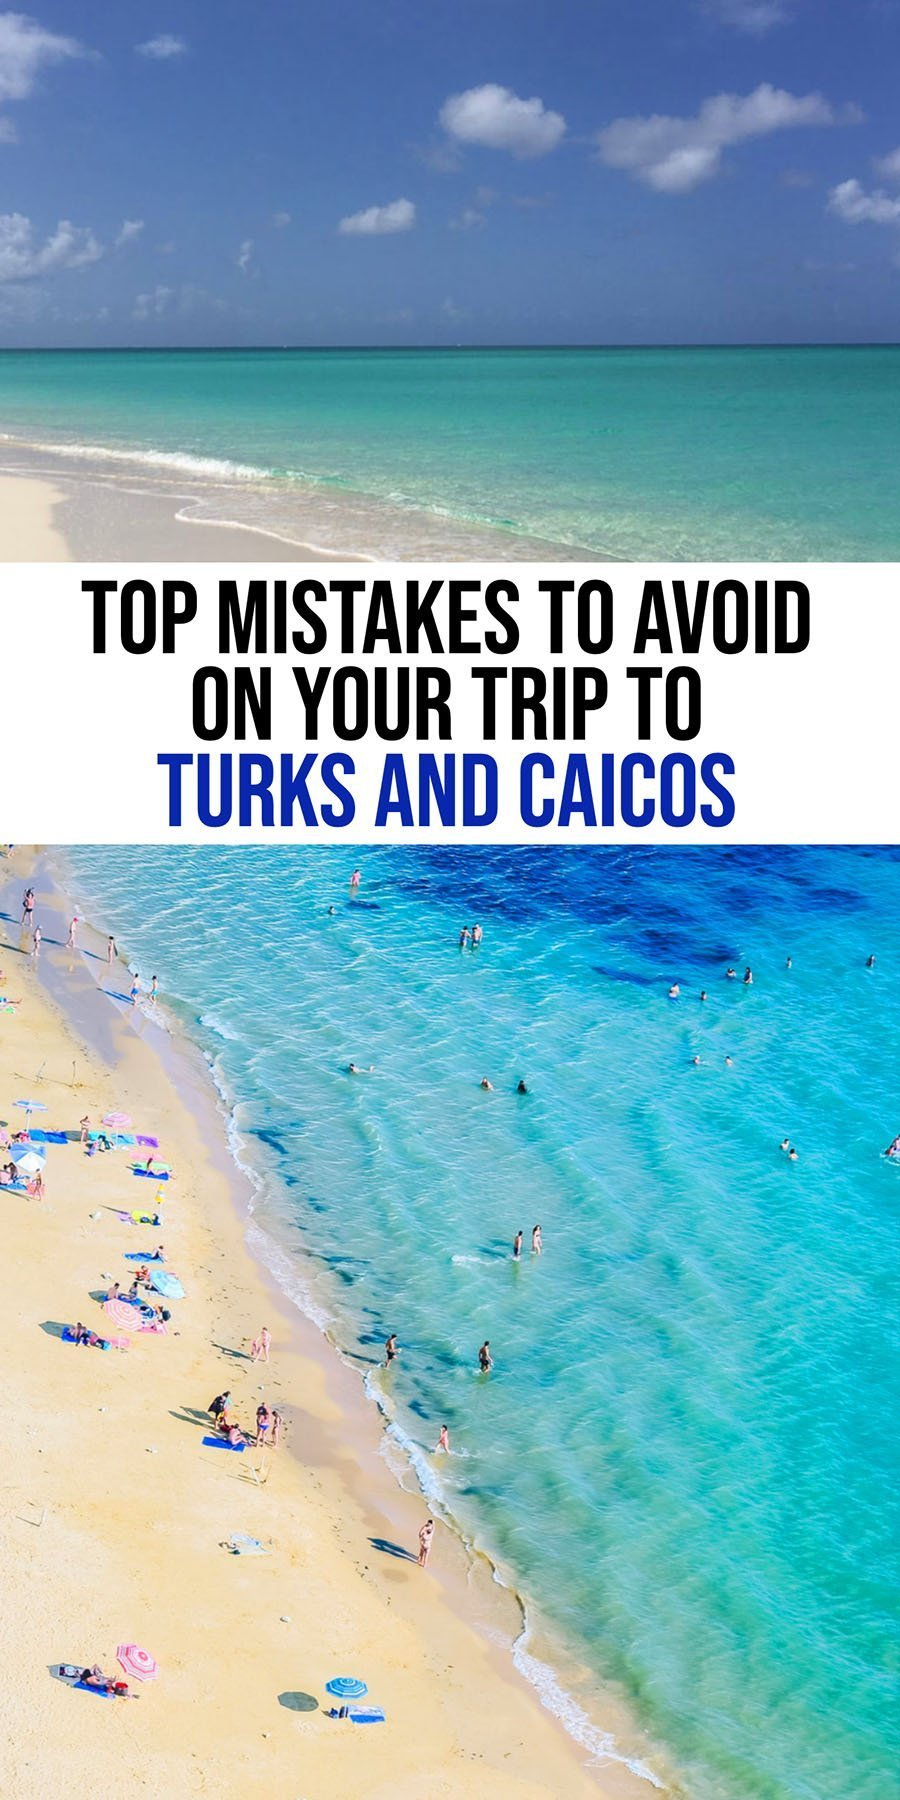 Visiting Turks and Caicos Islands